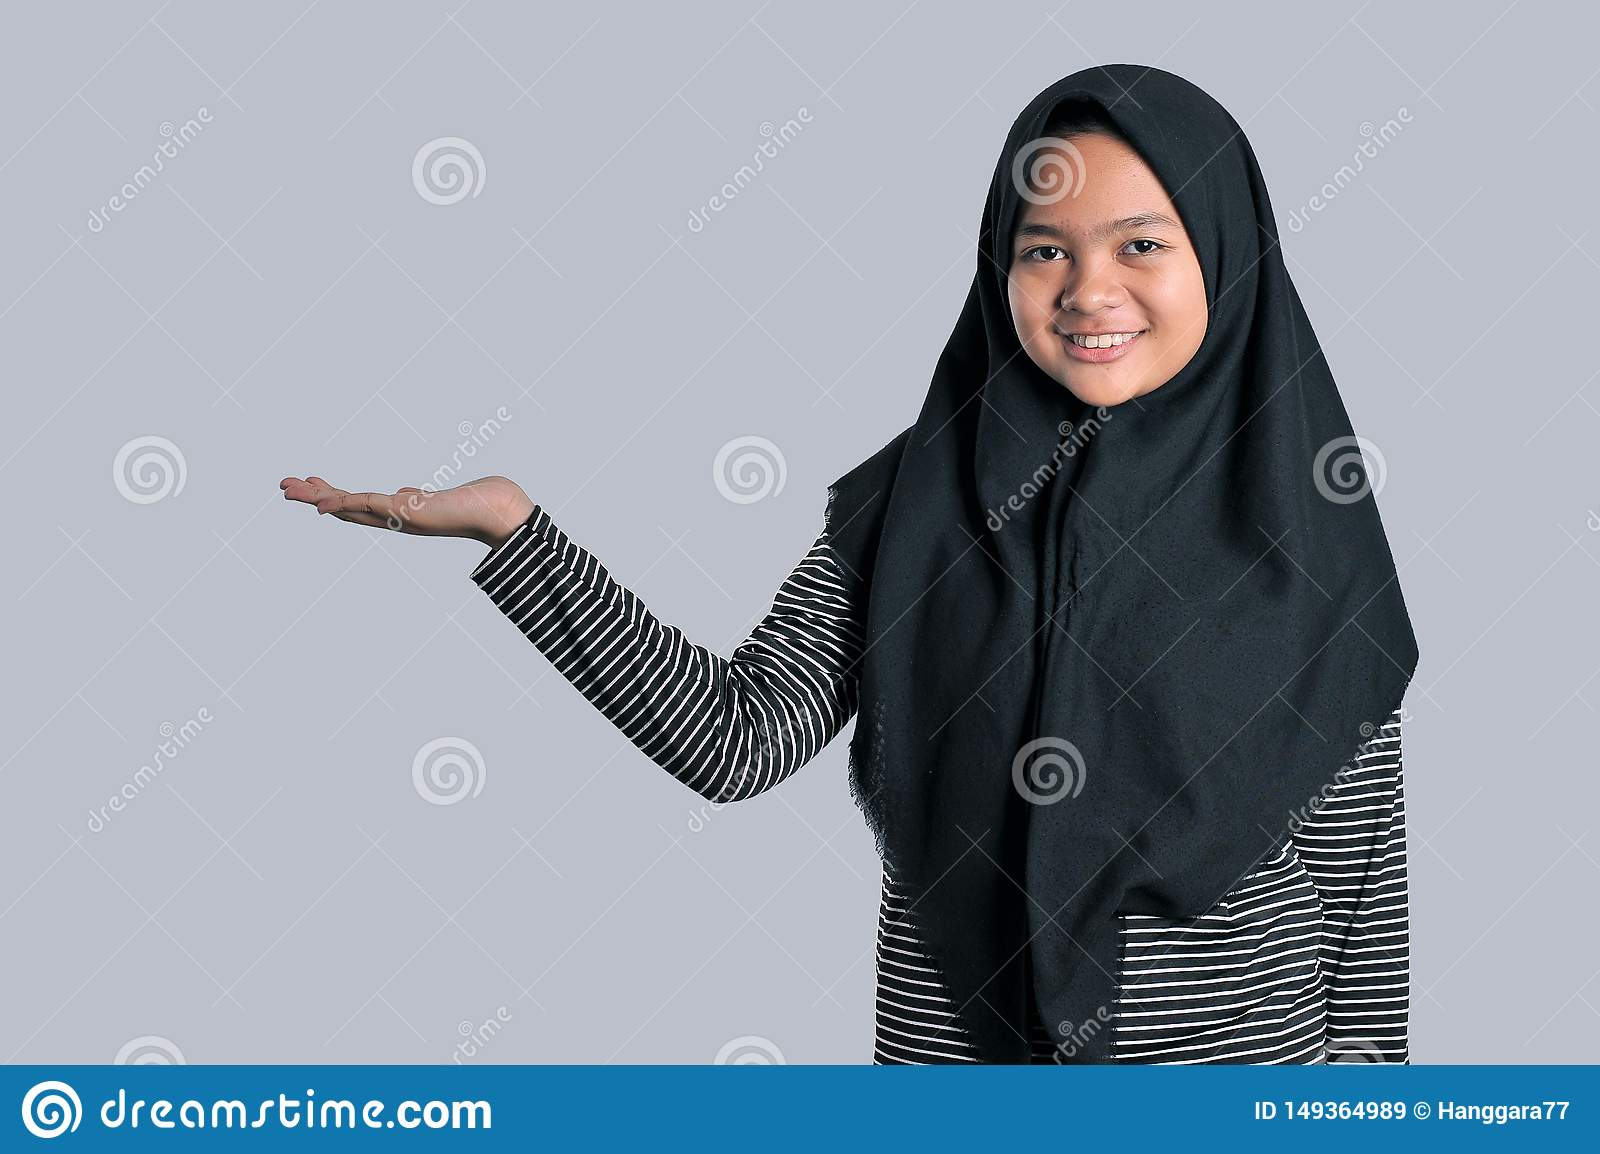 Portrait of a young girl wearing islamic headscarf showing blank area for sign or copyspase